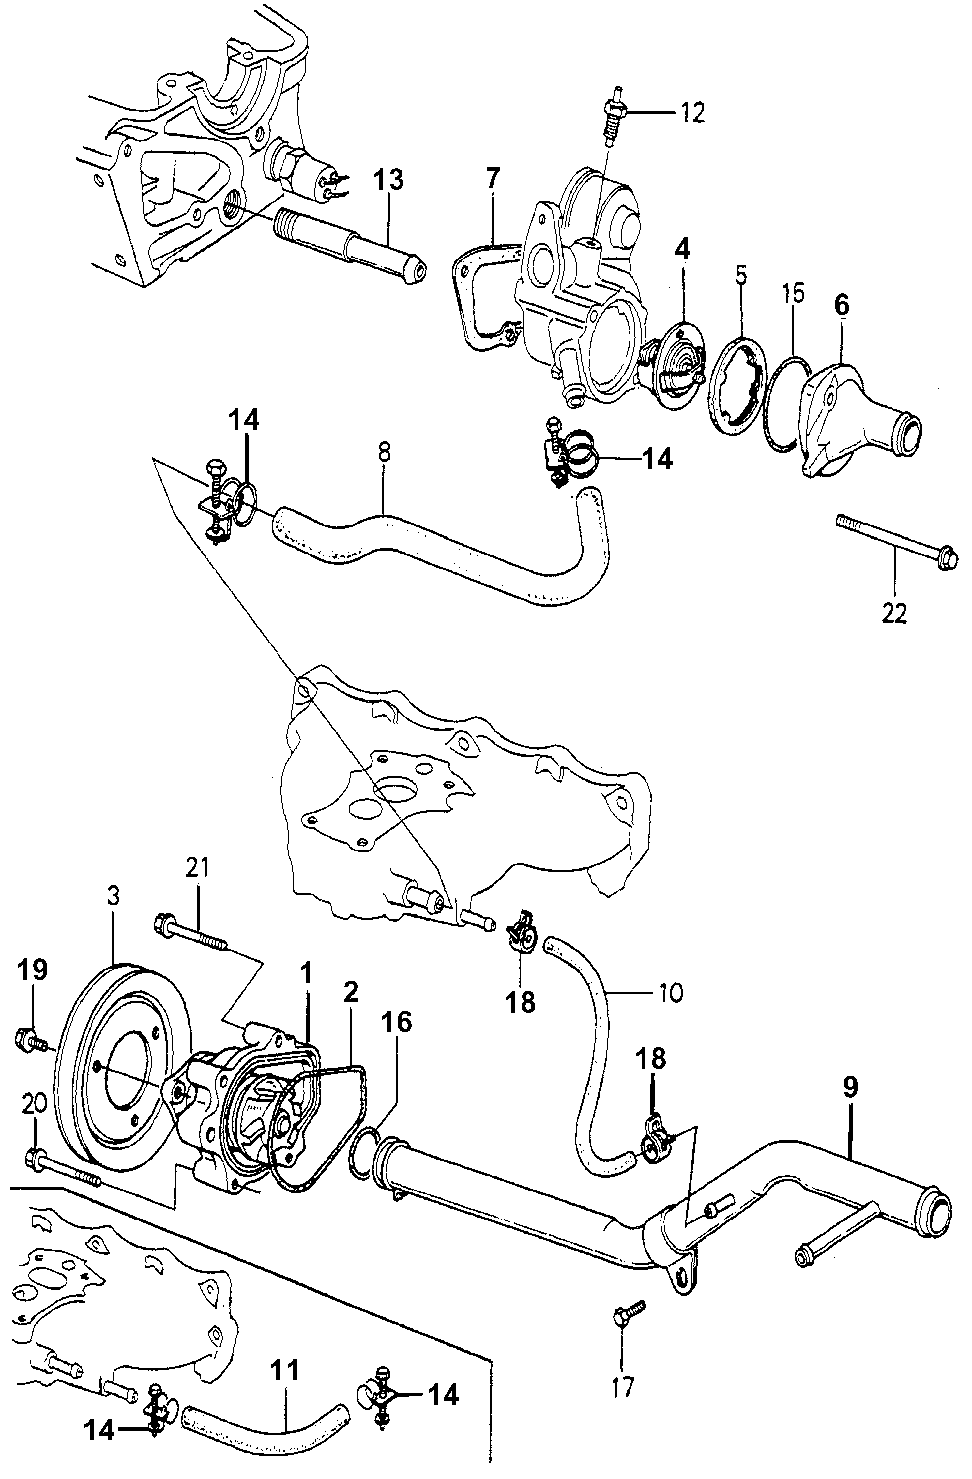 19224-PA6-020 - PULLEY, WATER PUMP